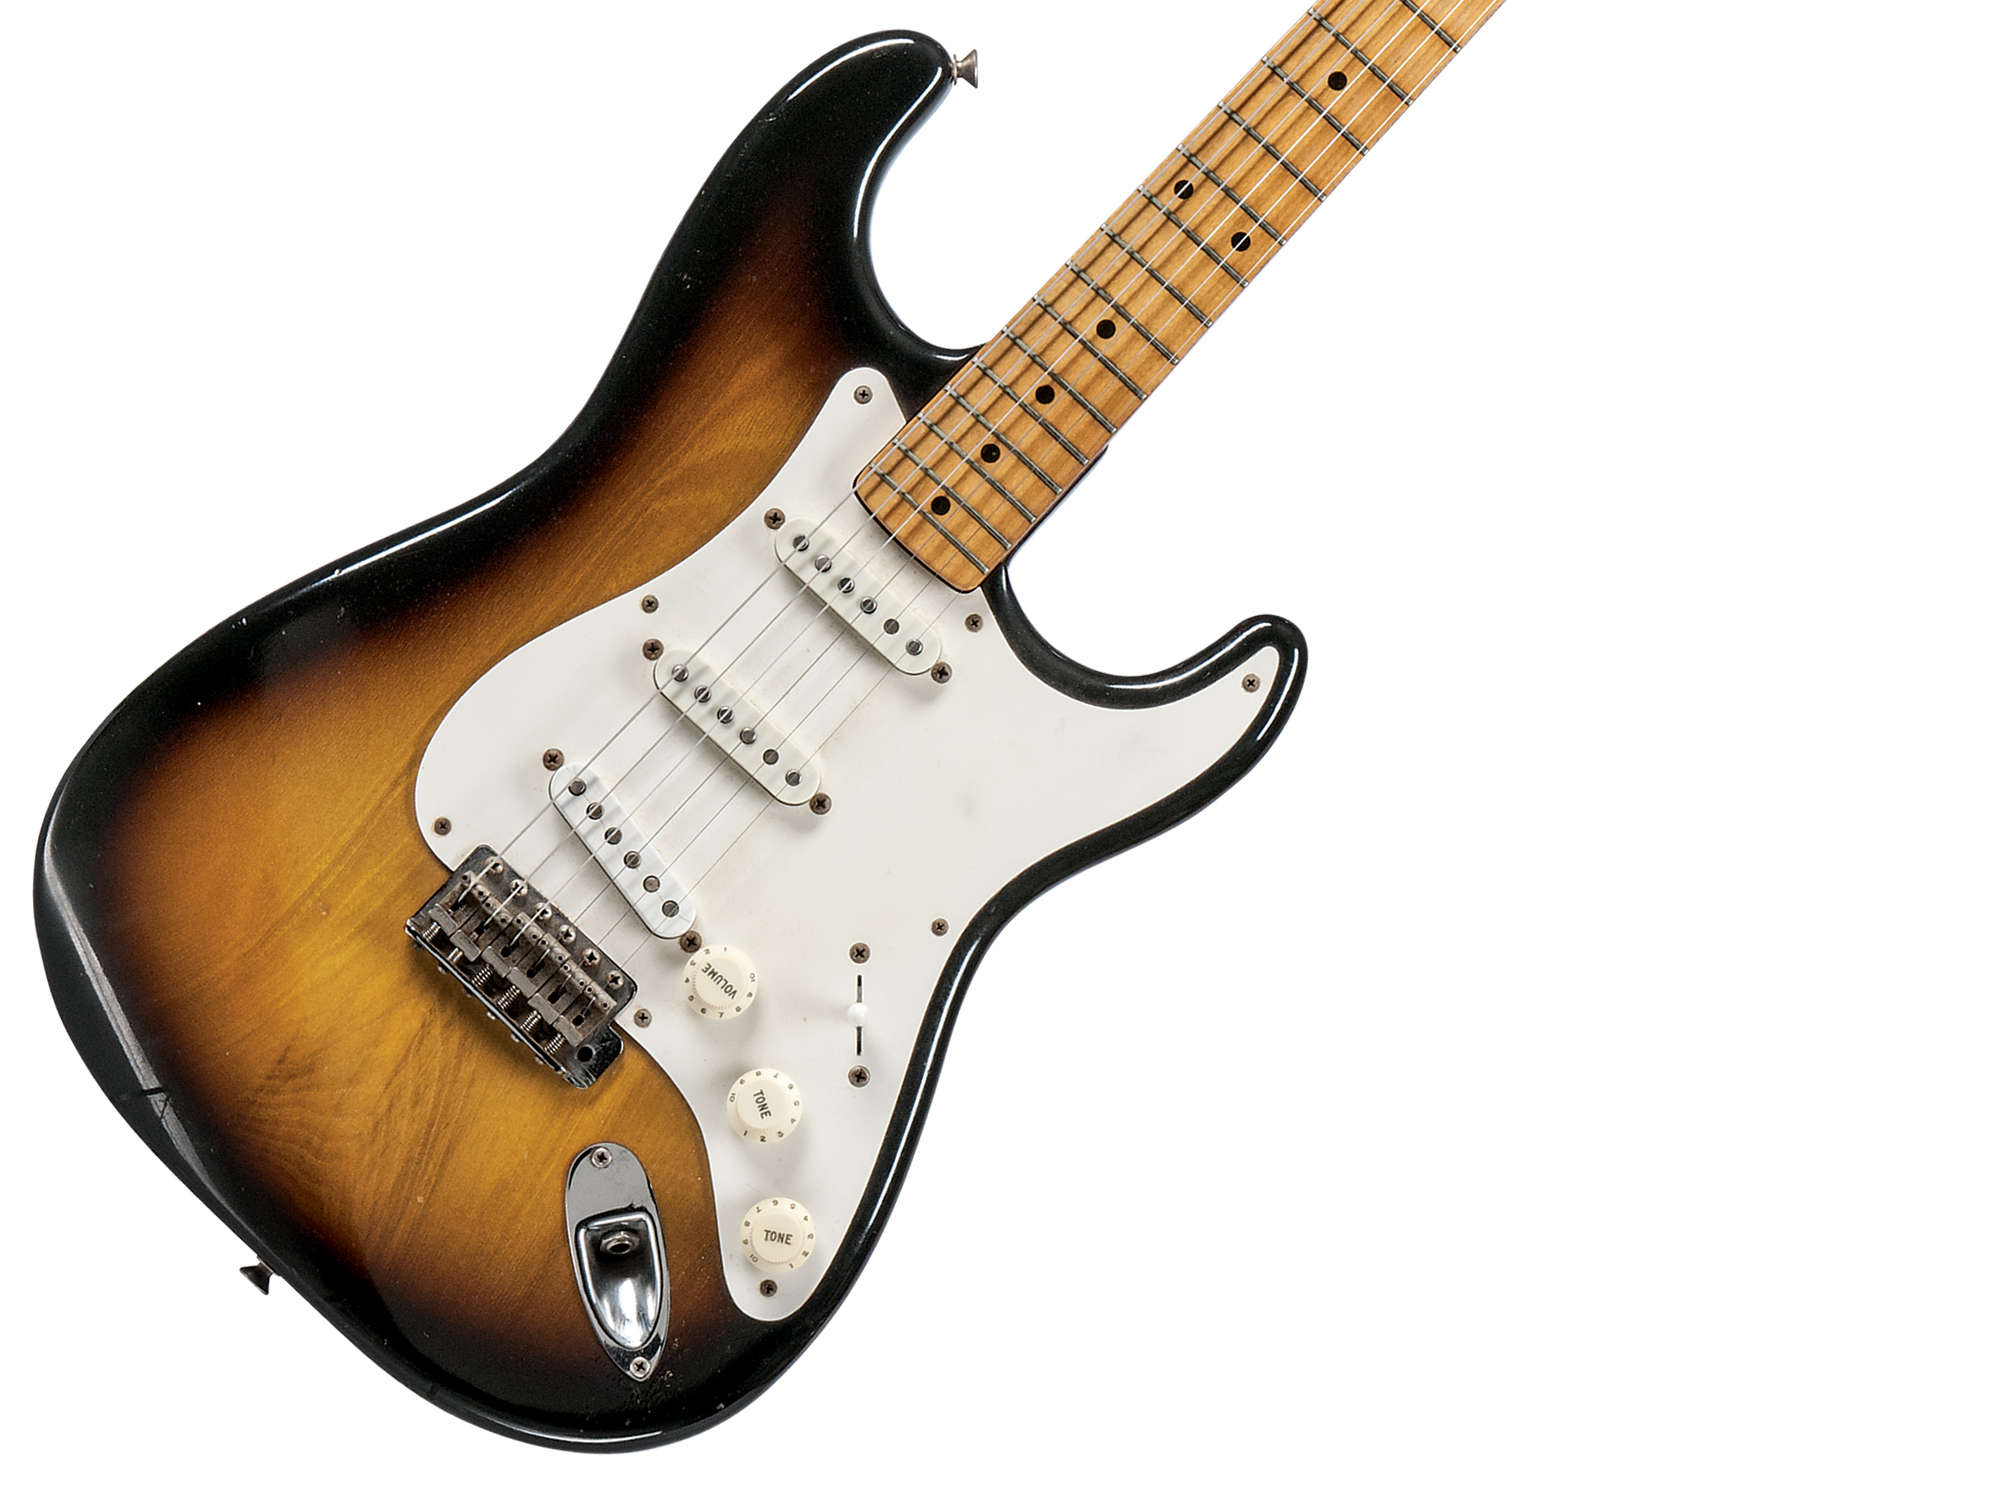 Fender Stratocaster Electric Guitar